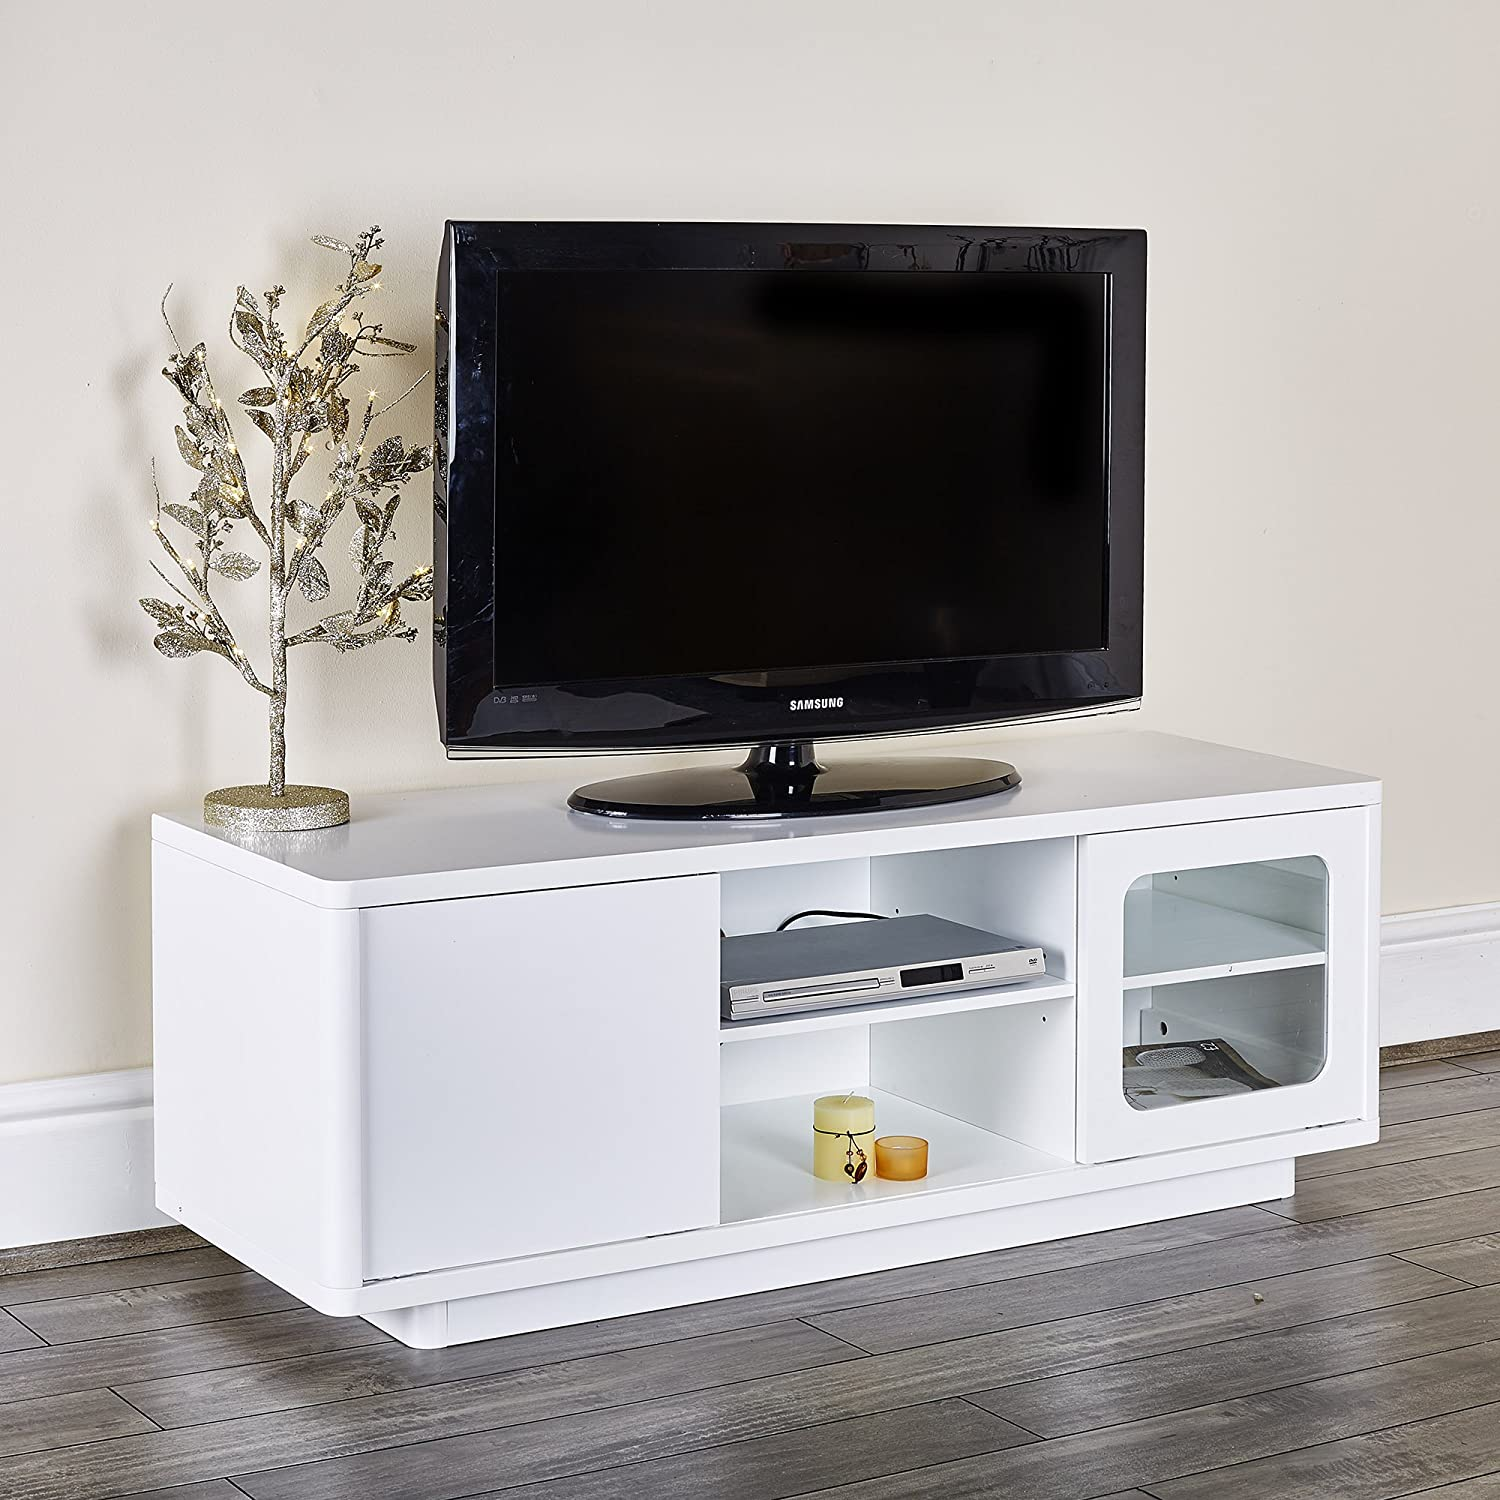 Abreo Tv Unit Cabinet Entertainment Stand With Shelves Sliding Doors